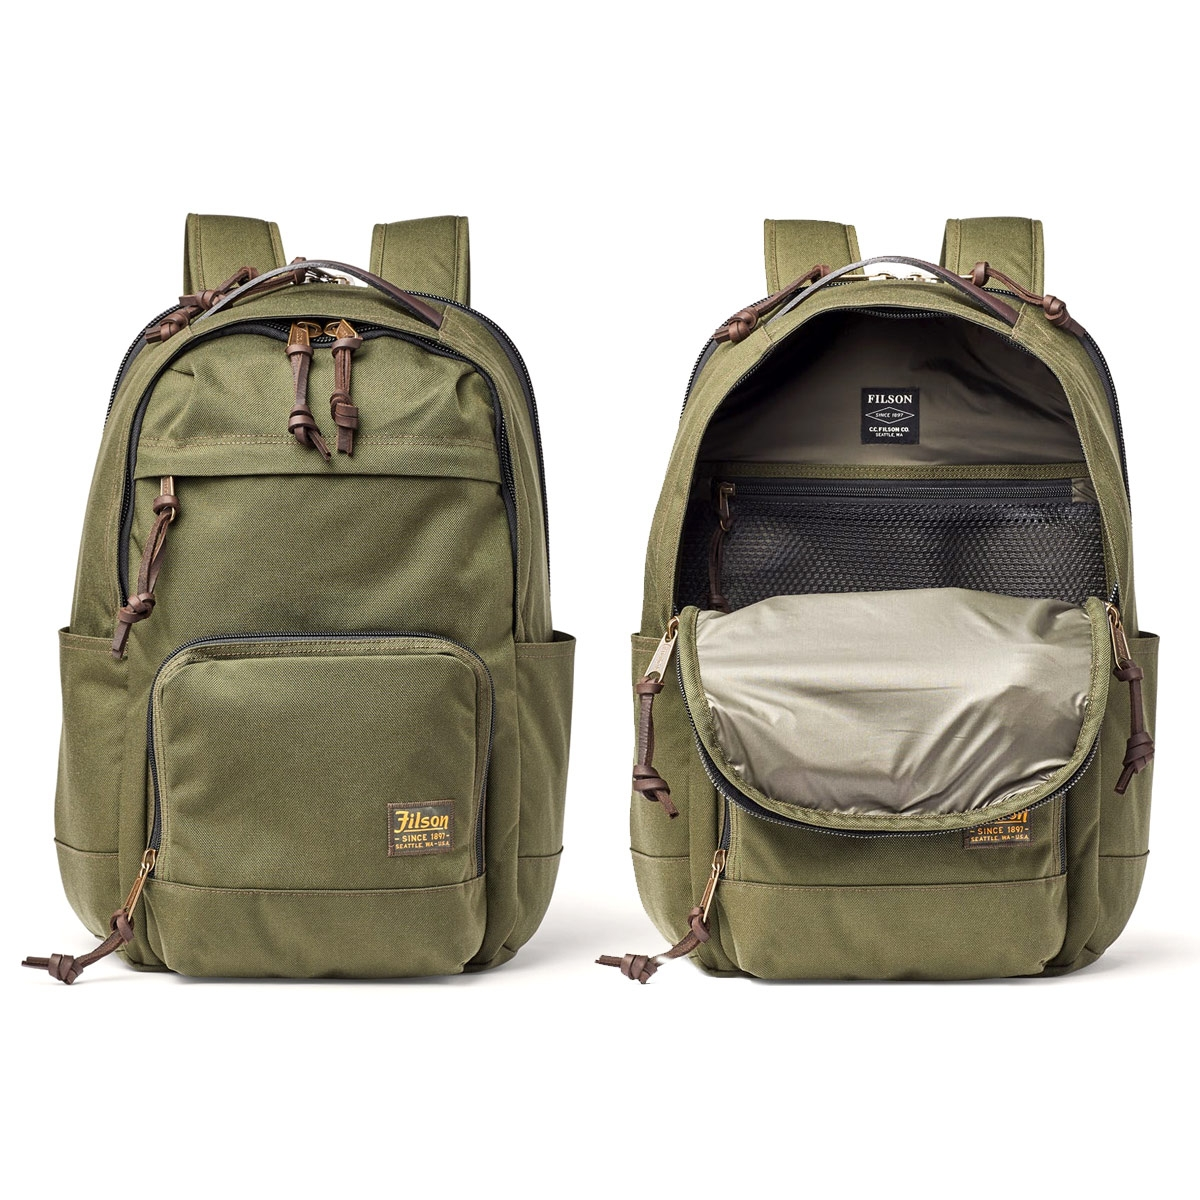 Filson Dryden Backpack 20152980 Otter Green